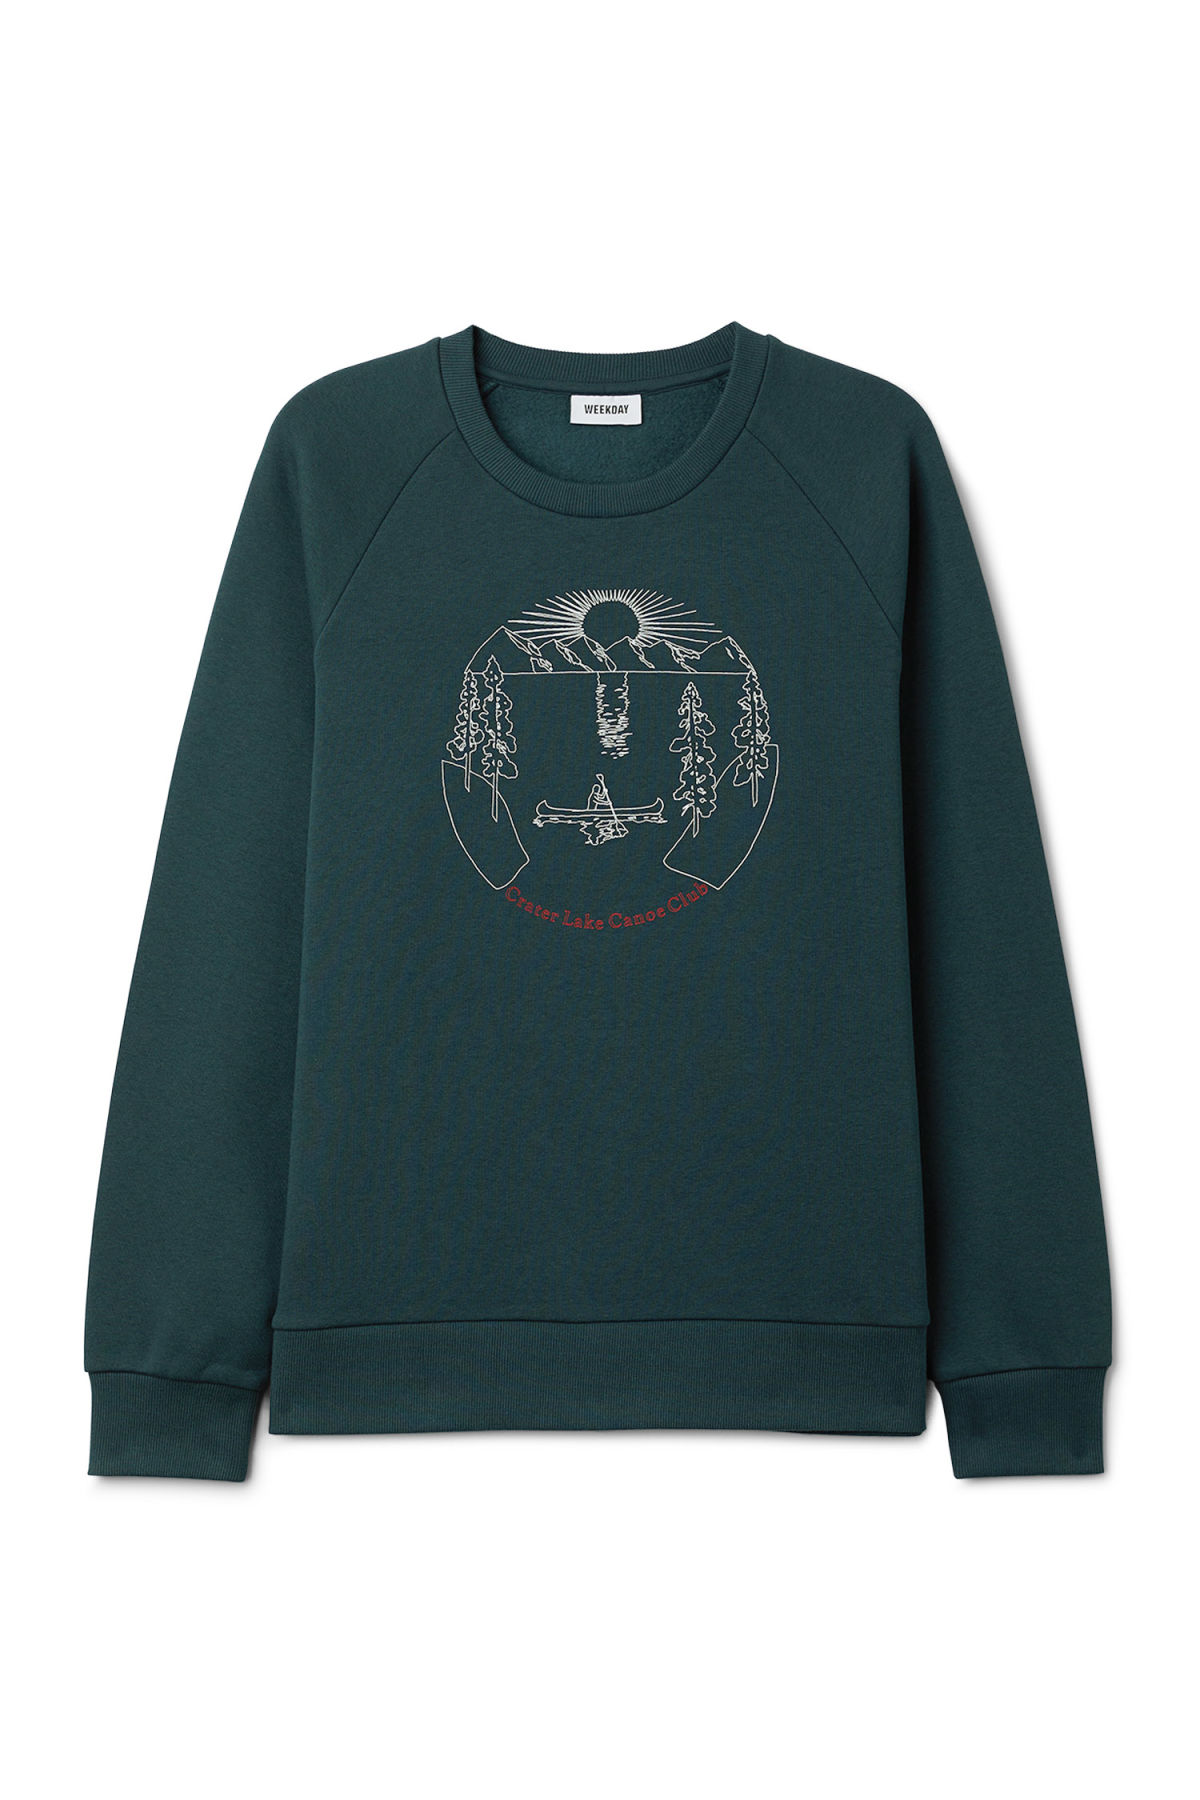 Front image of Weekday paris canoe sweatshirt in turquoise